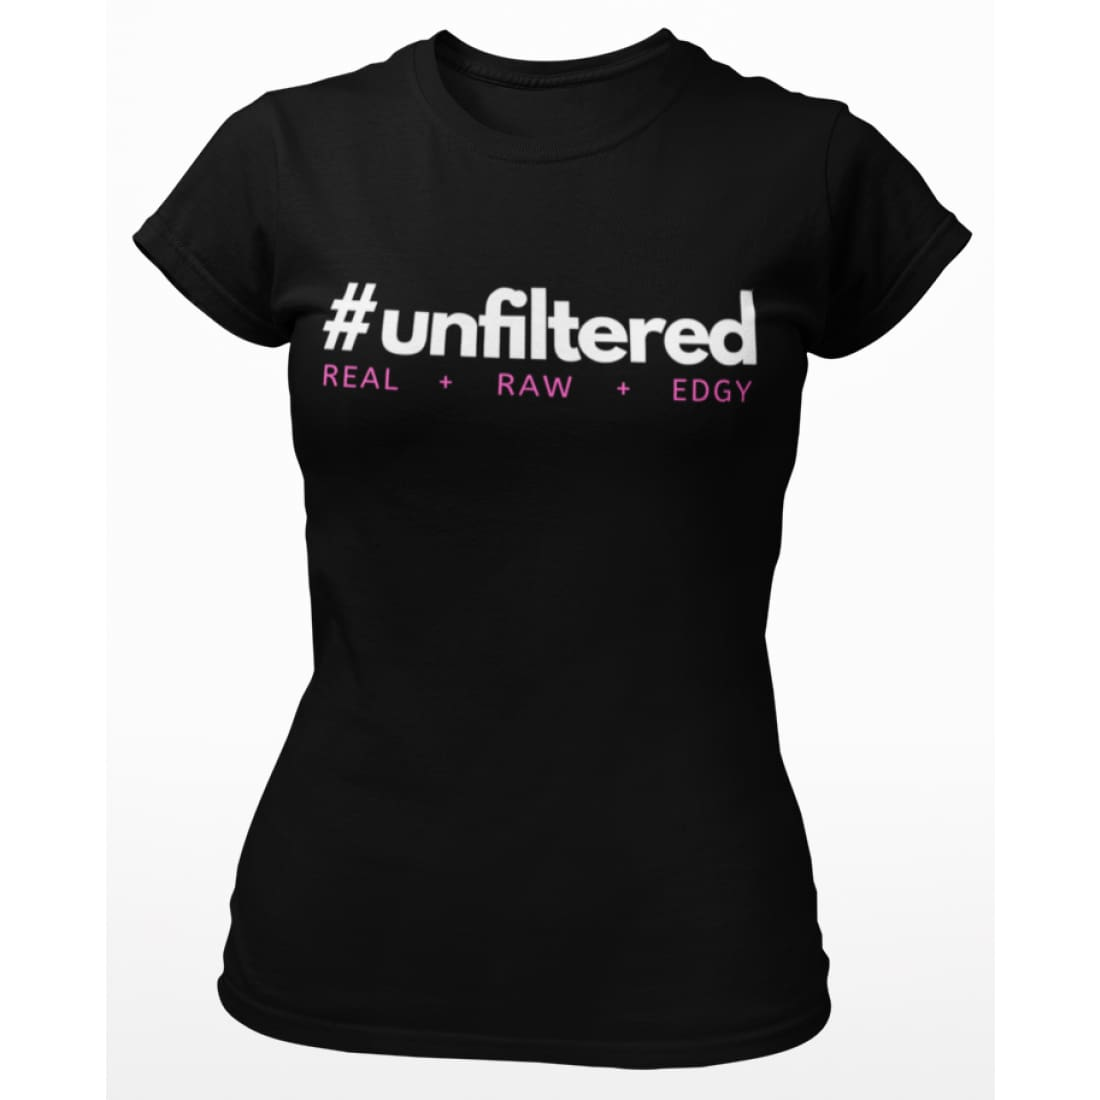 #UNFILTERED Ladies Short-Sleeve Message T-Shirt - T-shirts